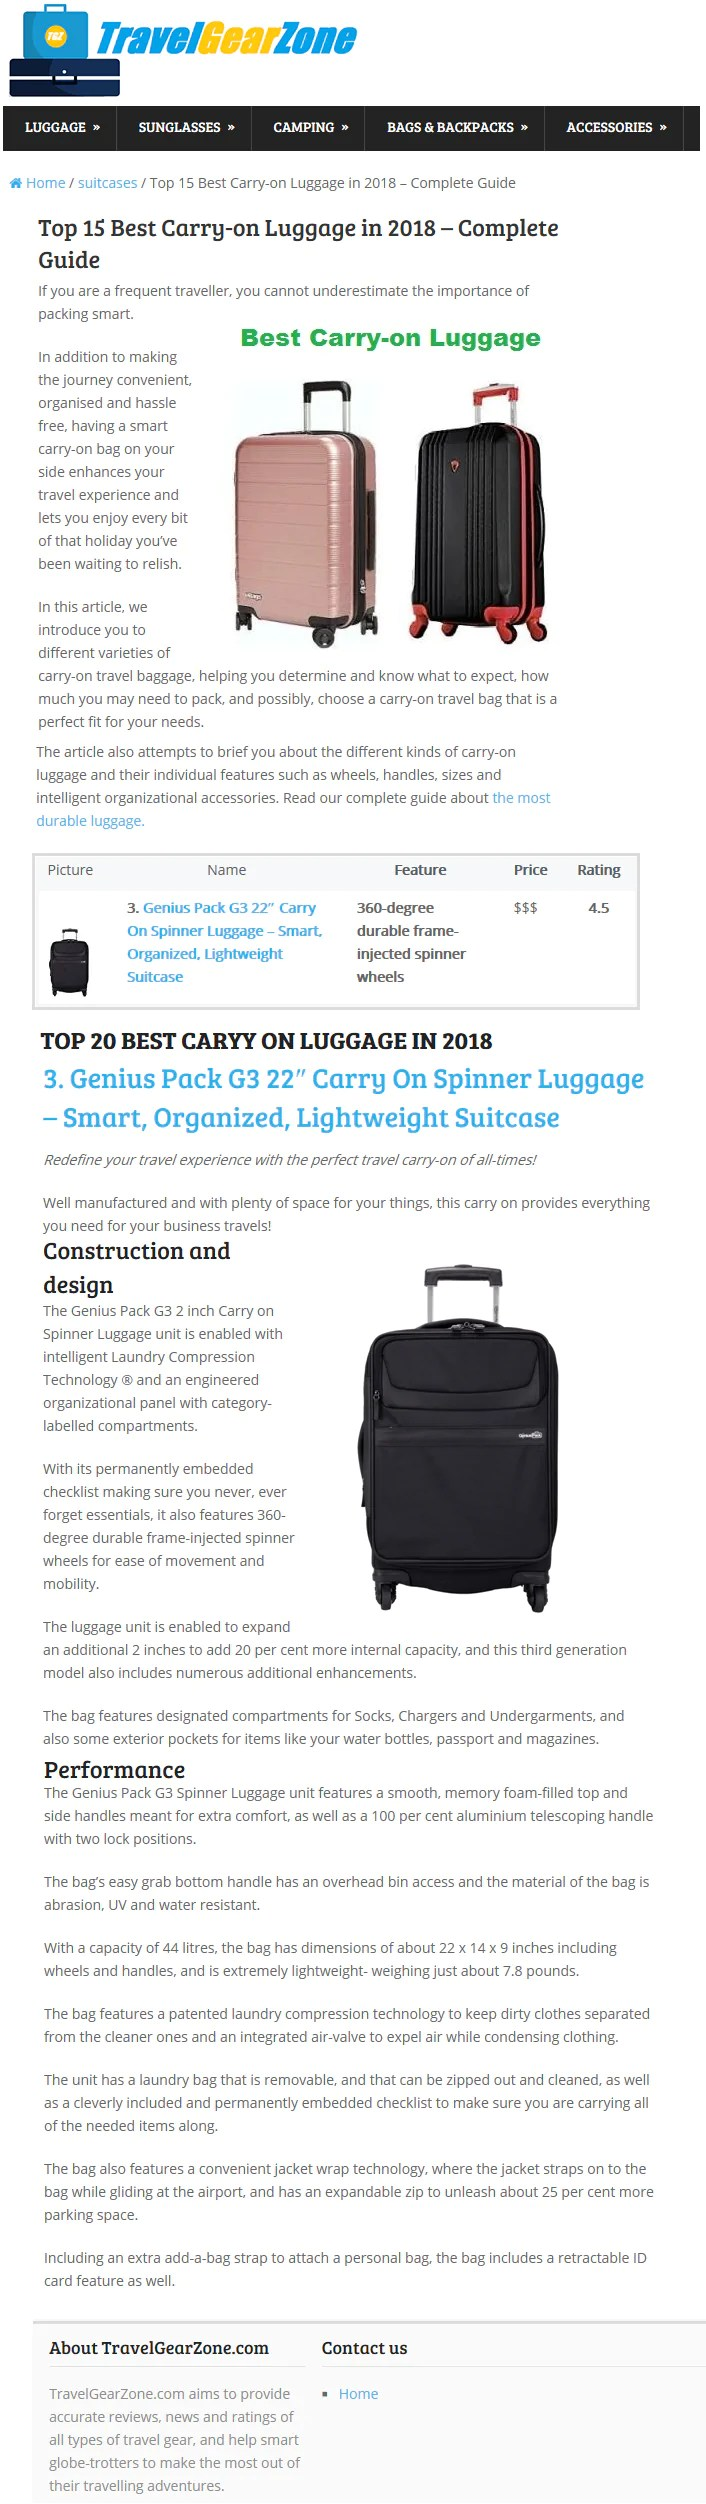 2018 Travel Gear Best Carry On Luggage In 2018 Travel Gear Zone Genius Pack